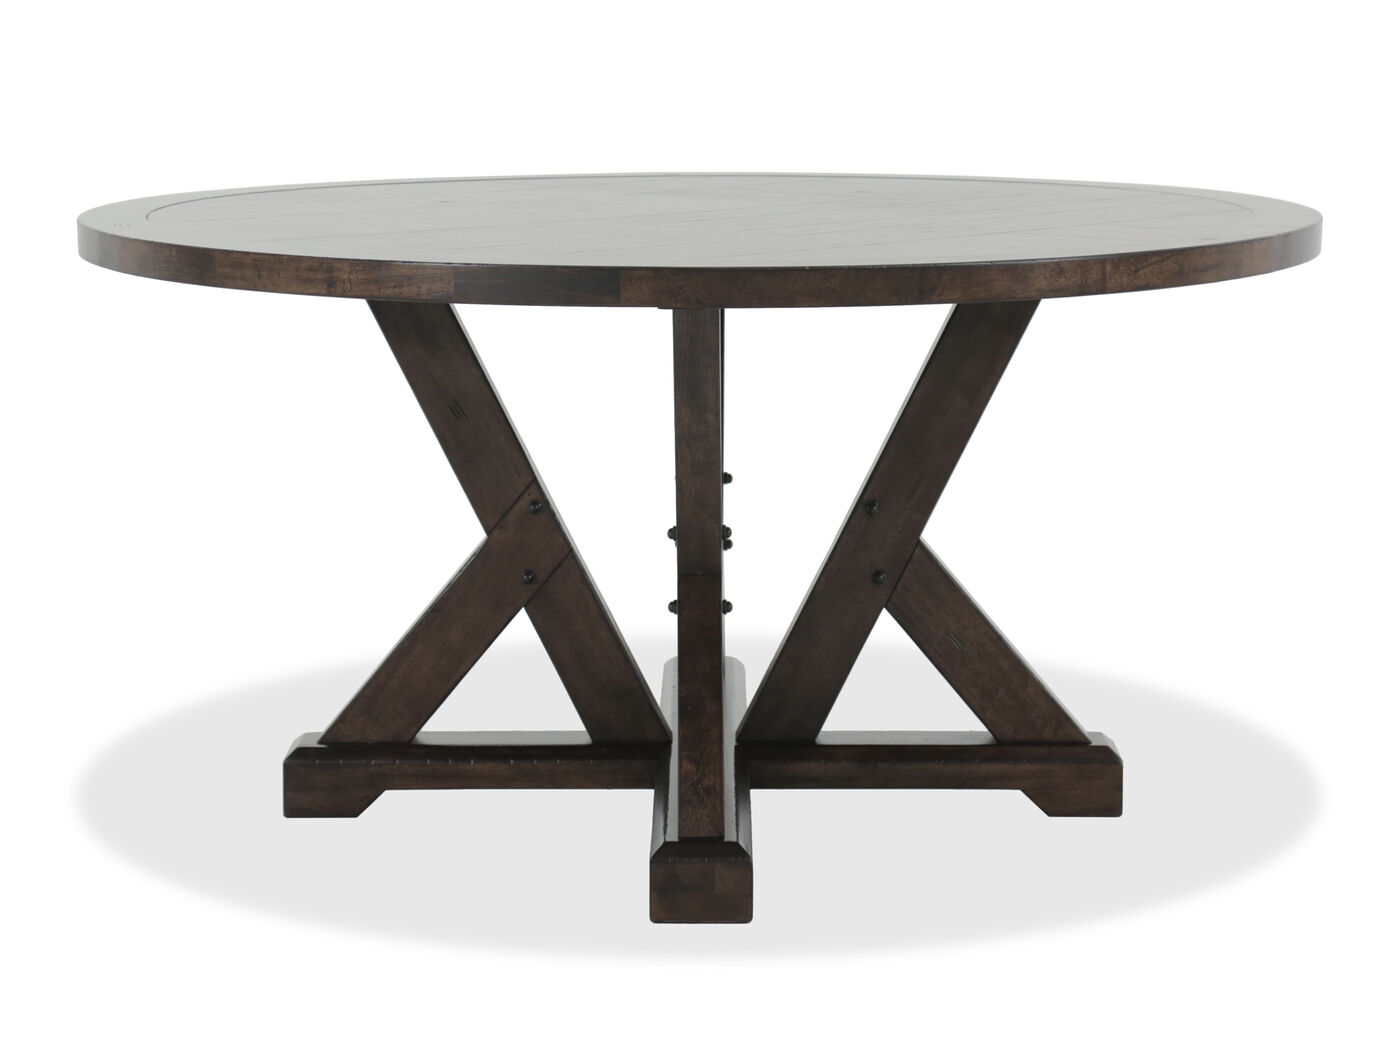 Mathis Brothers Dining Tables Legacy Seven Dining Set  : BROY 861550301 from joshandira.com size 1333 x 1000 jpeg 58kB